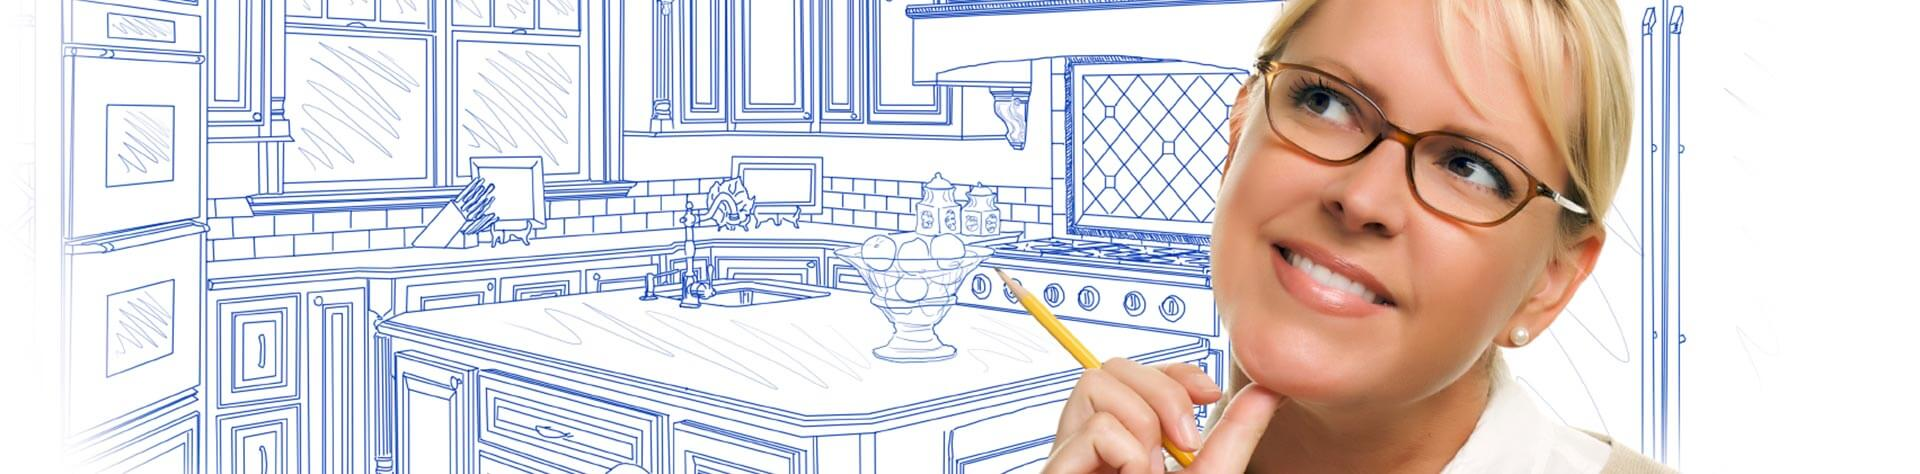 How-to-Choose-the-Right-Remodeling-Contractor